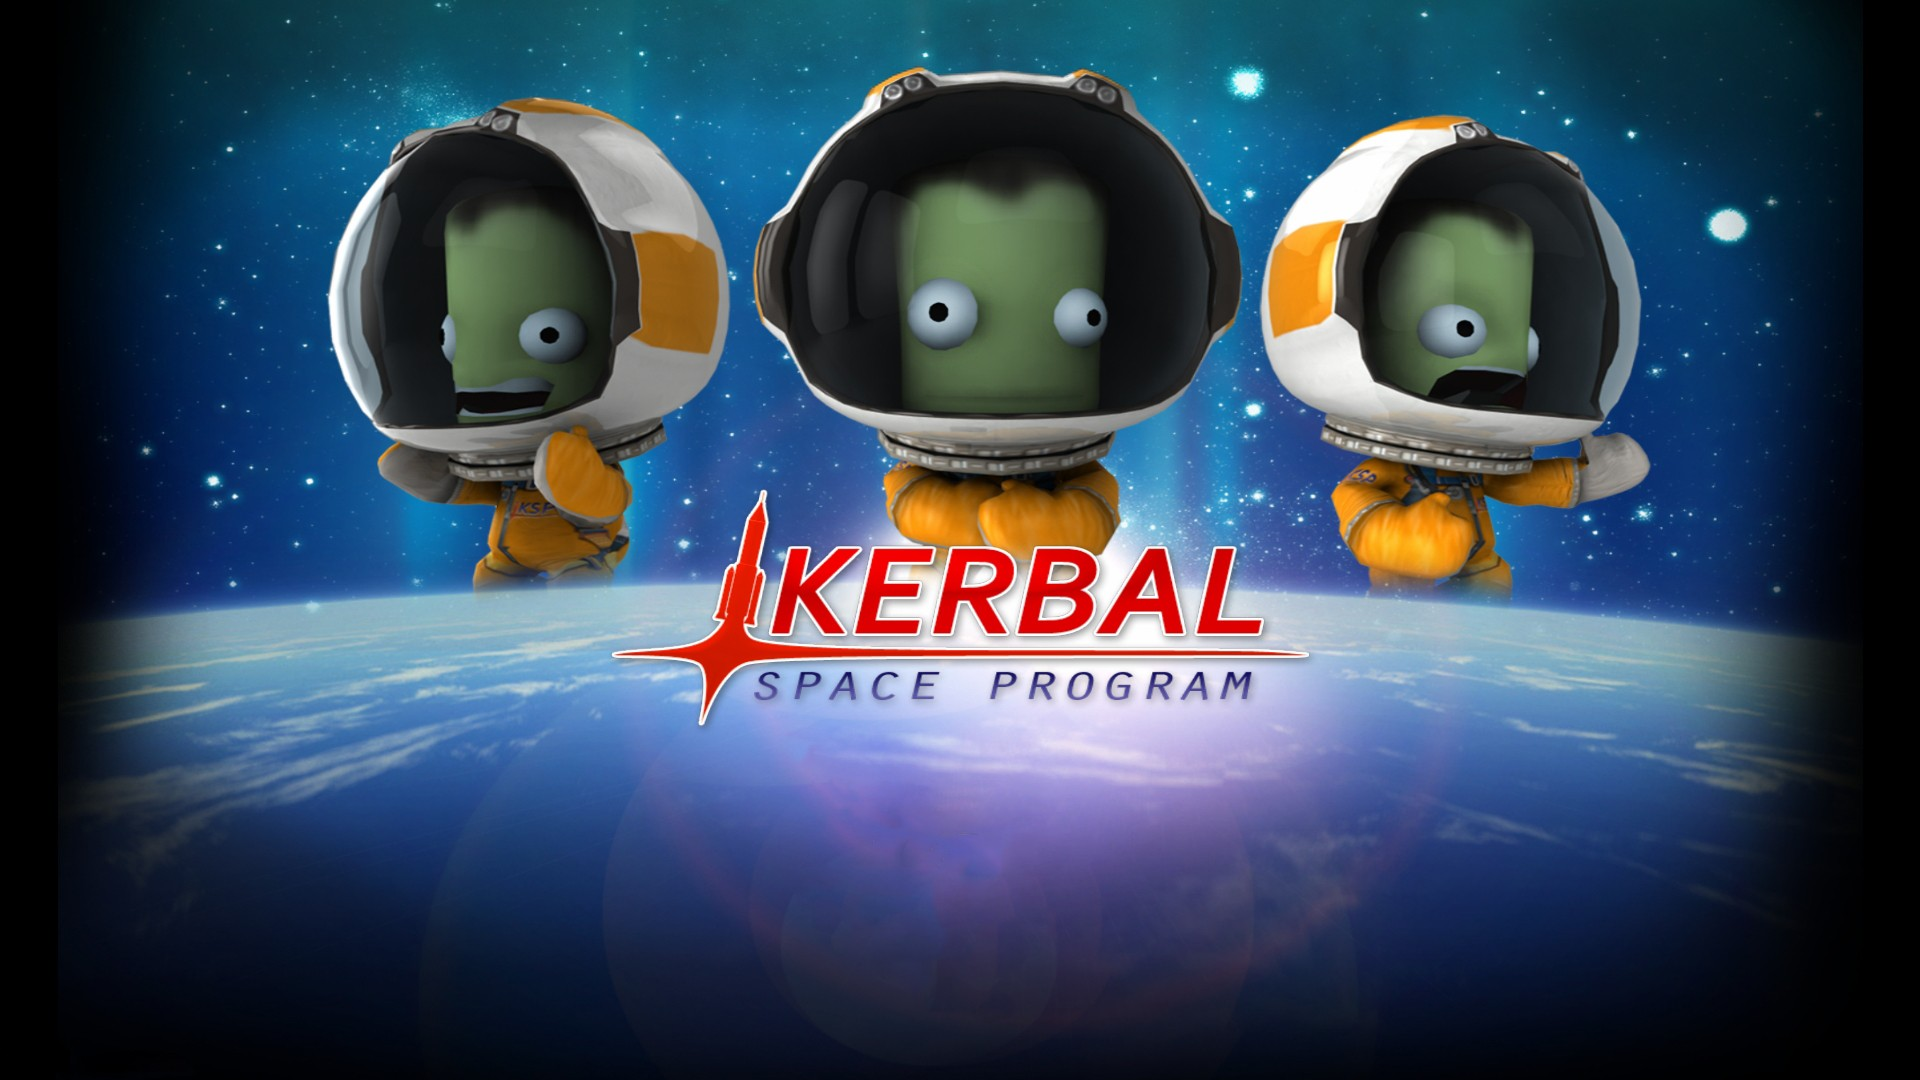 Kerbal space program MOAR POWAR feat